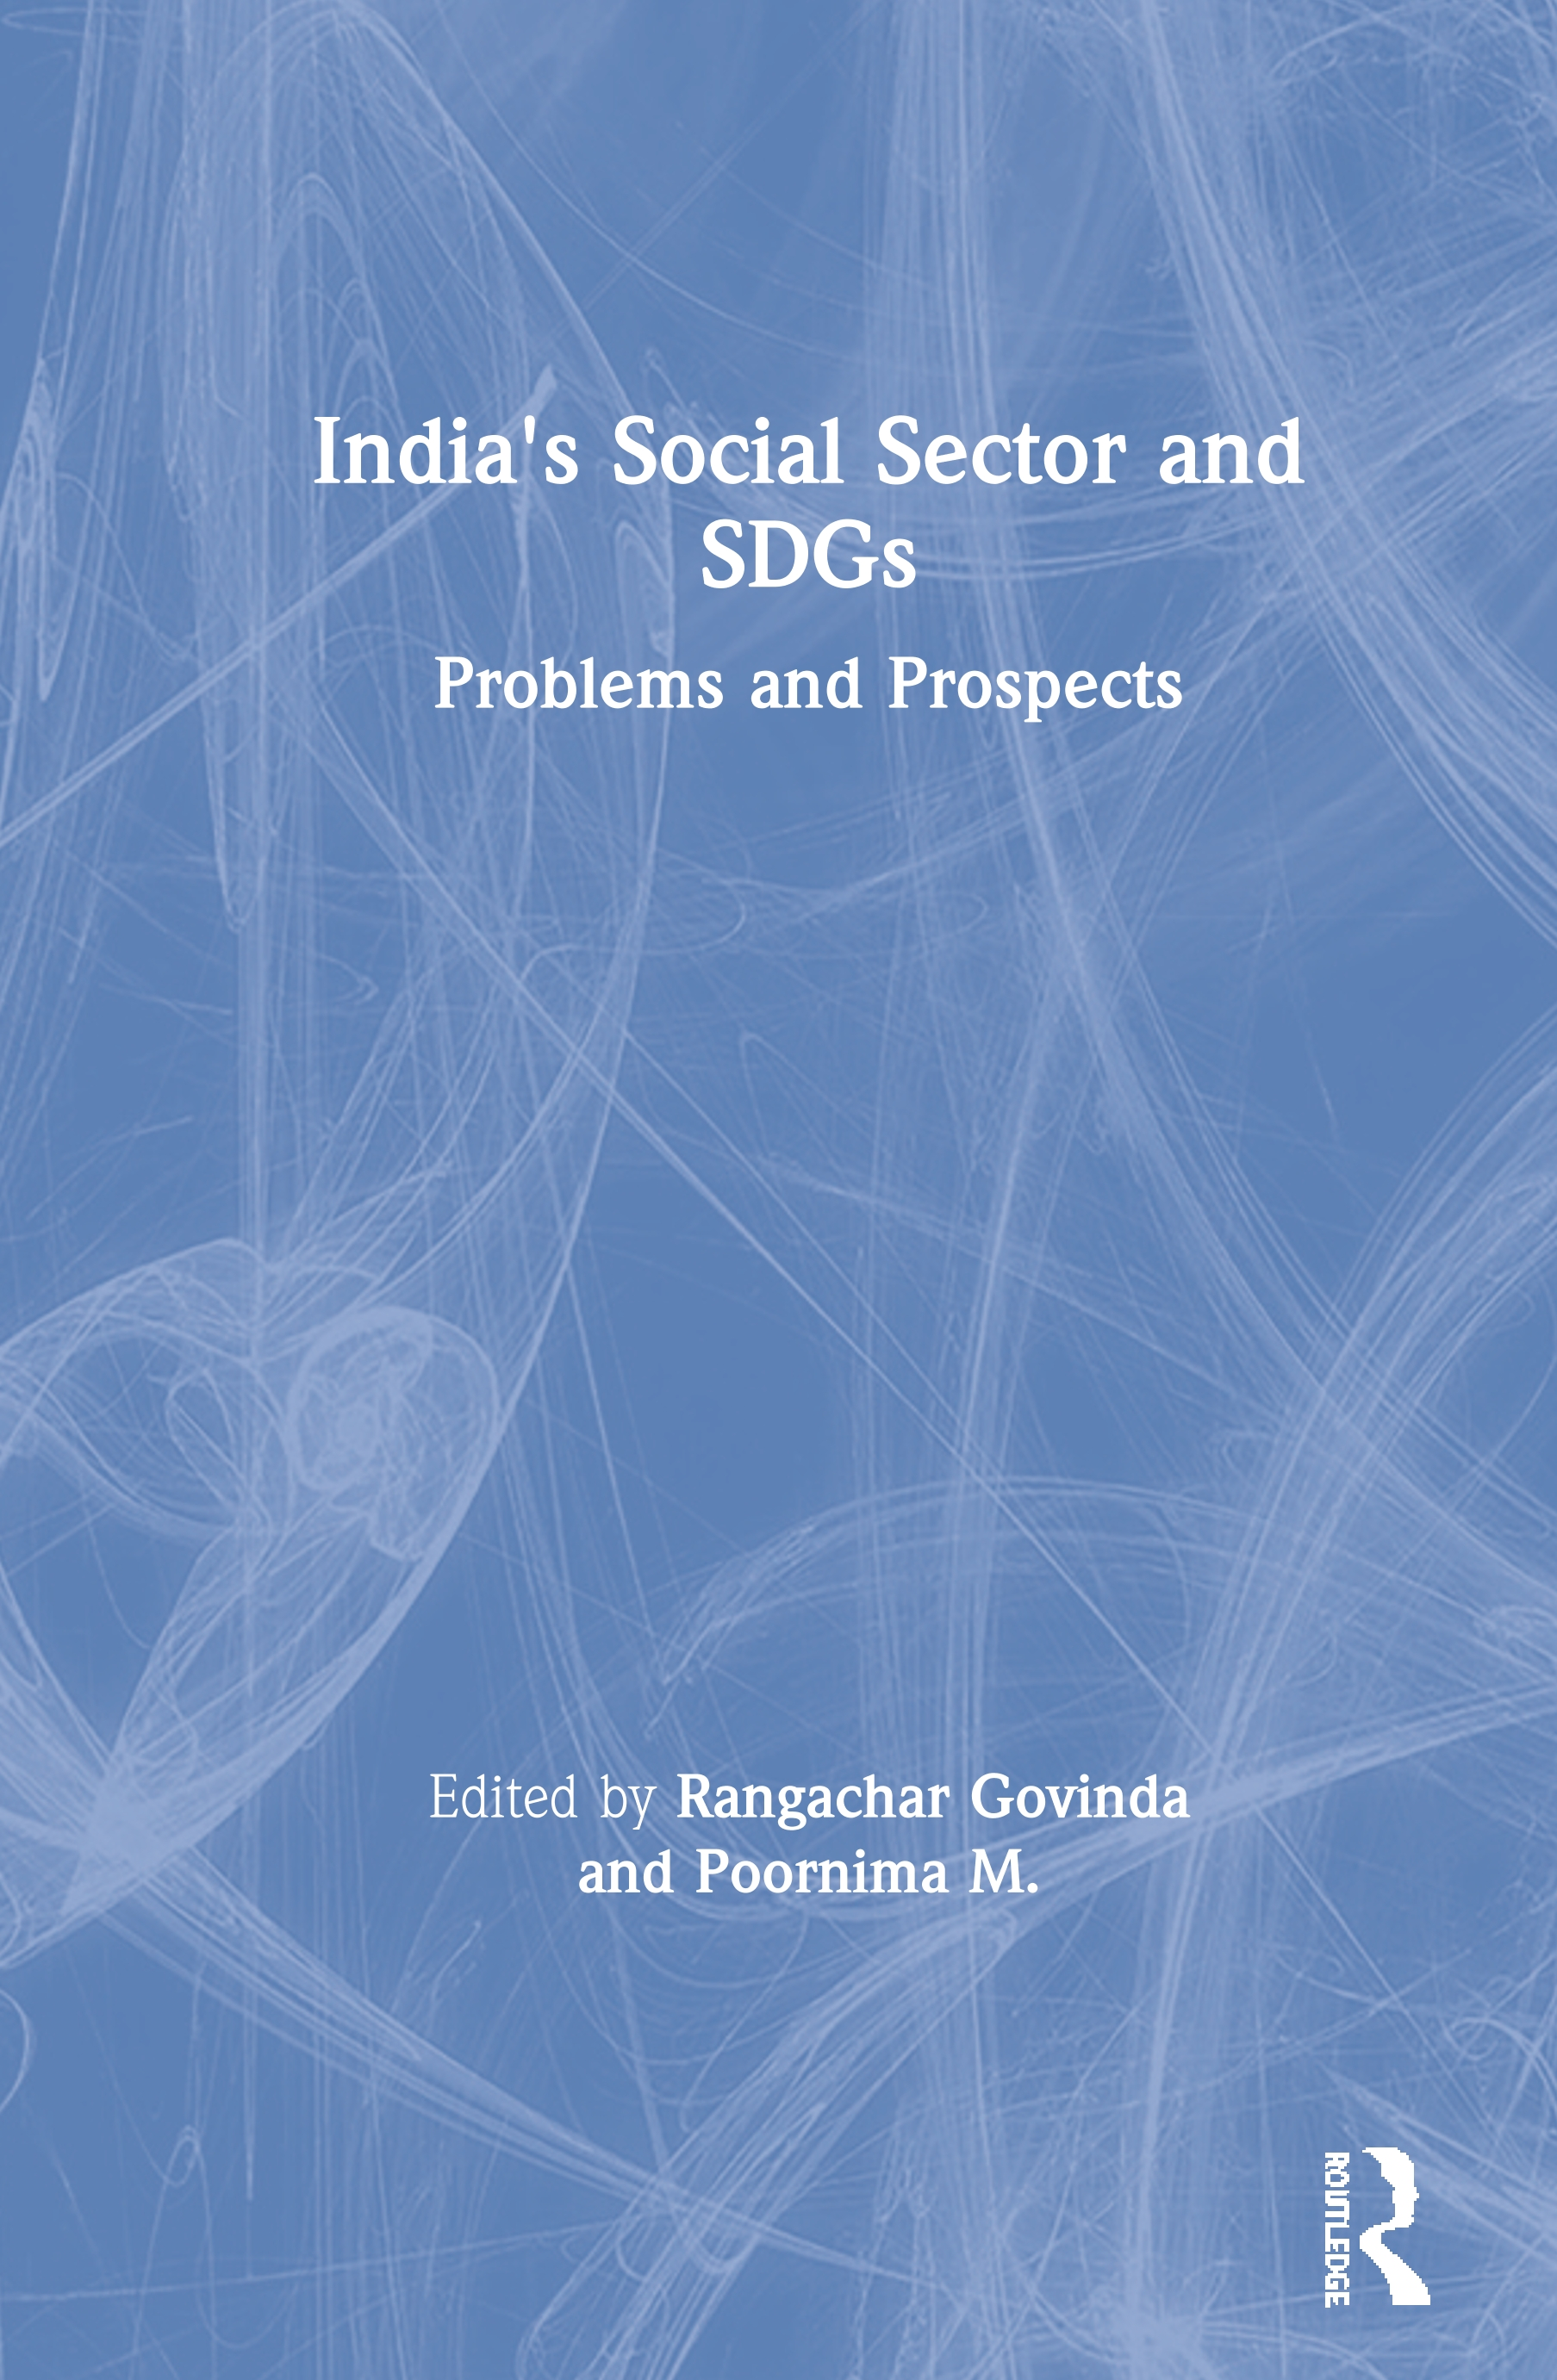 India's Social Sector and SDGs: Problems and Prospects book cover